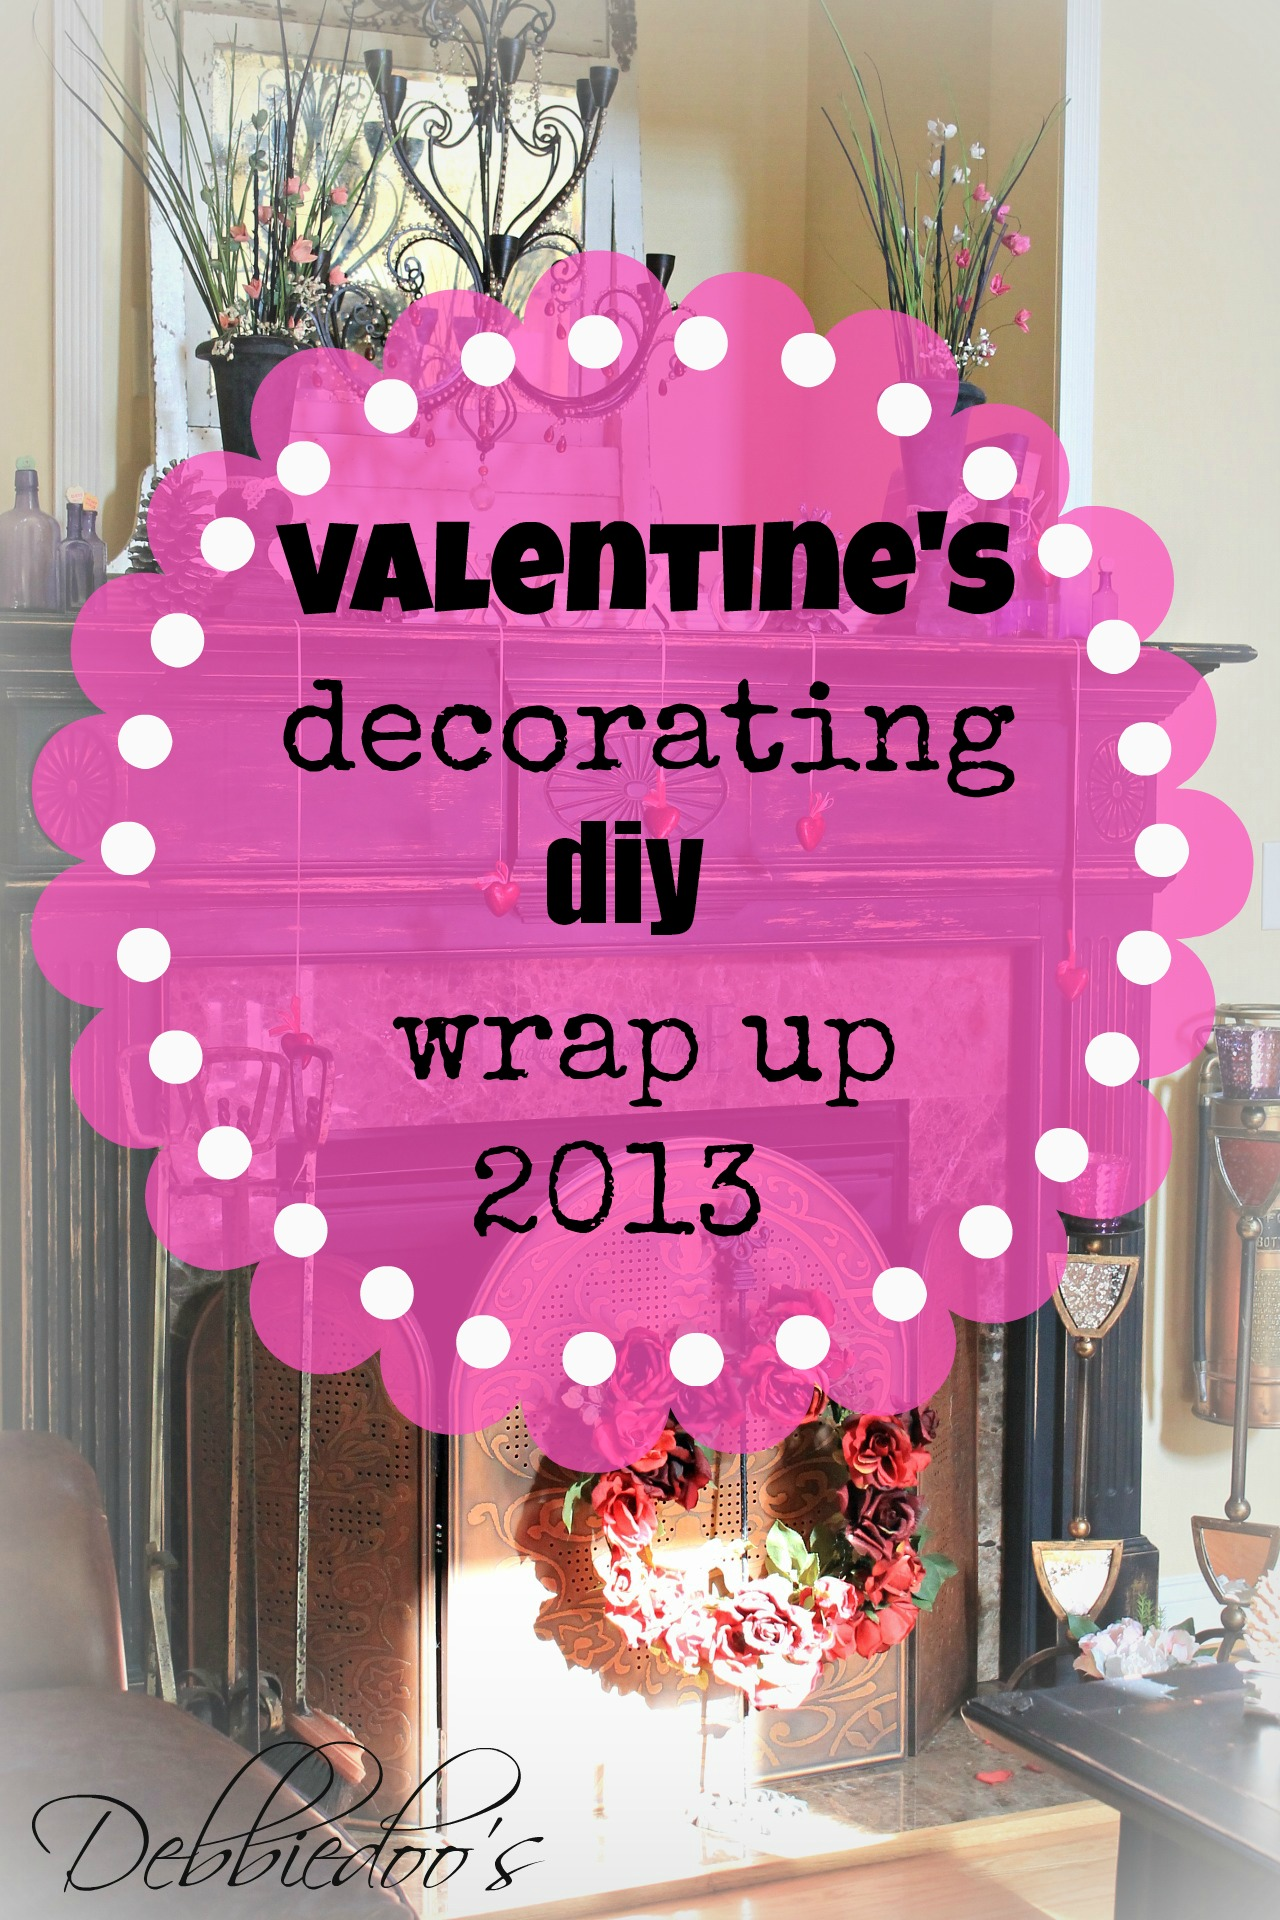 Valentines decor diy wrap up